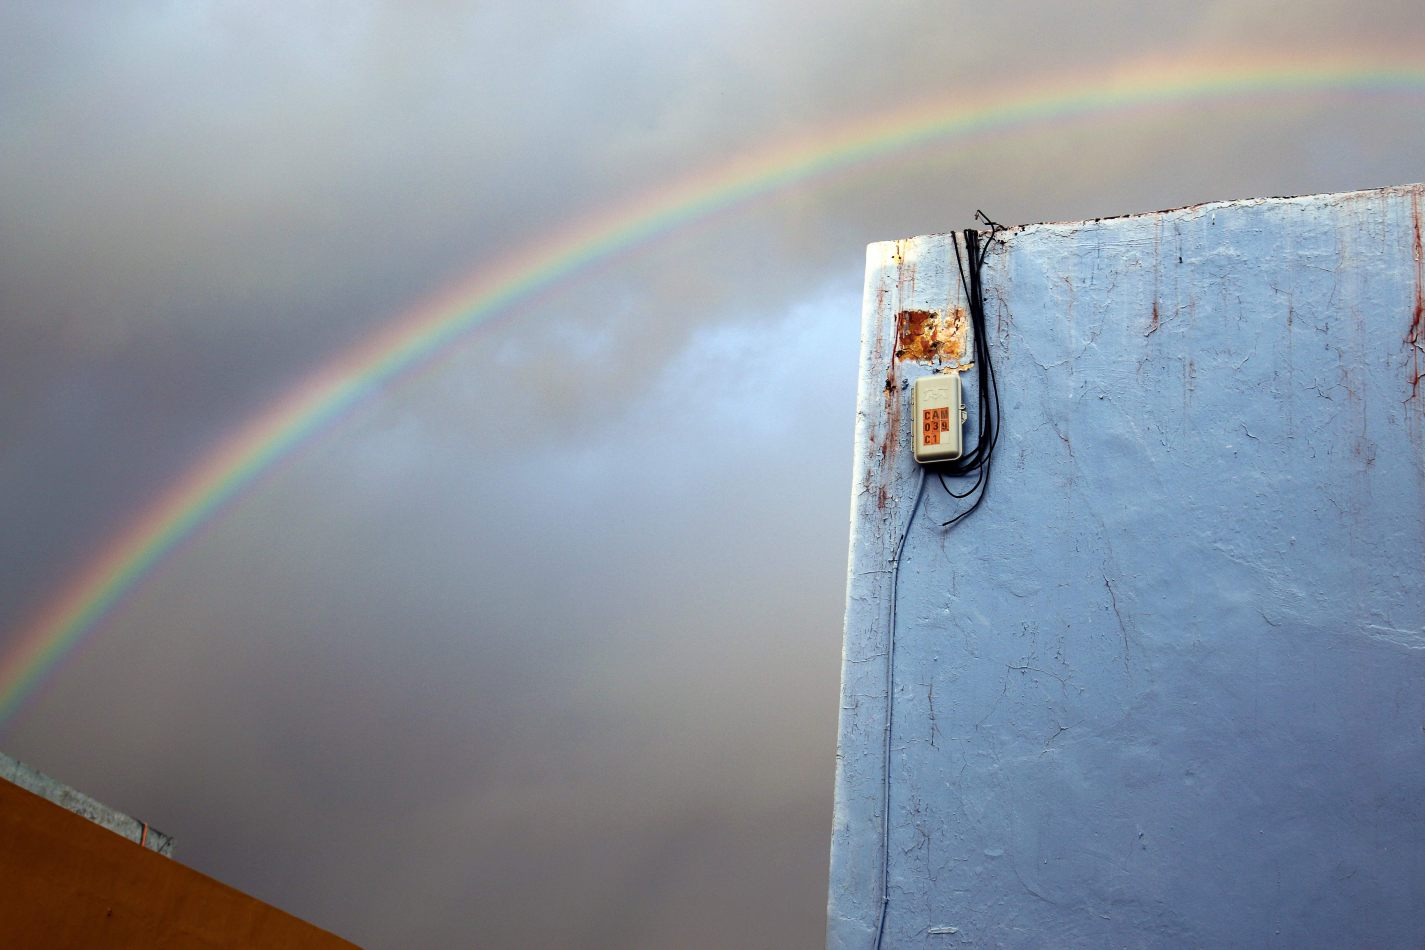 Anthony Ellis Photography: Small Sacrifices - Rainbow